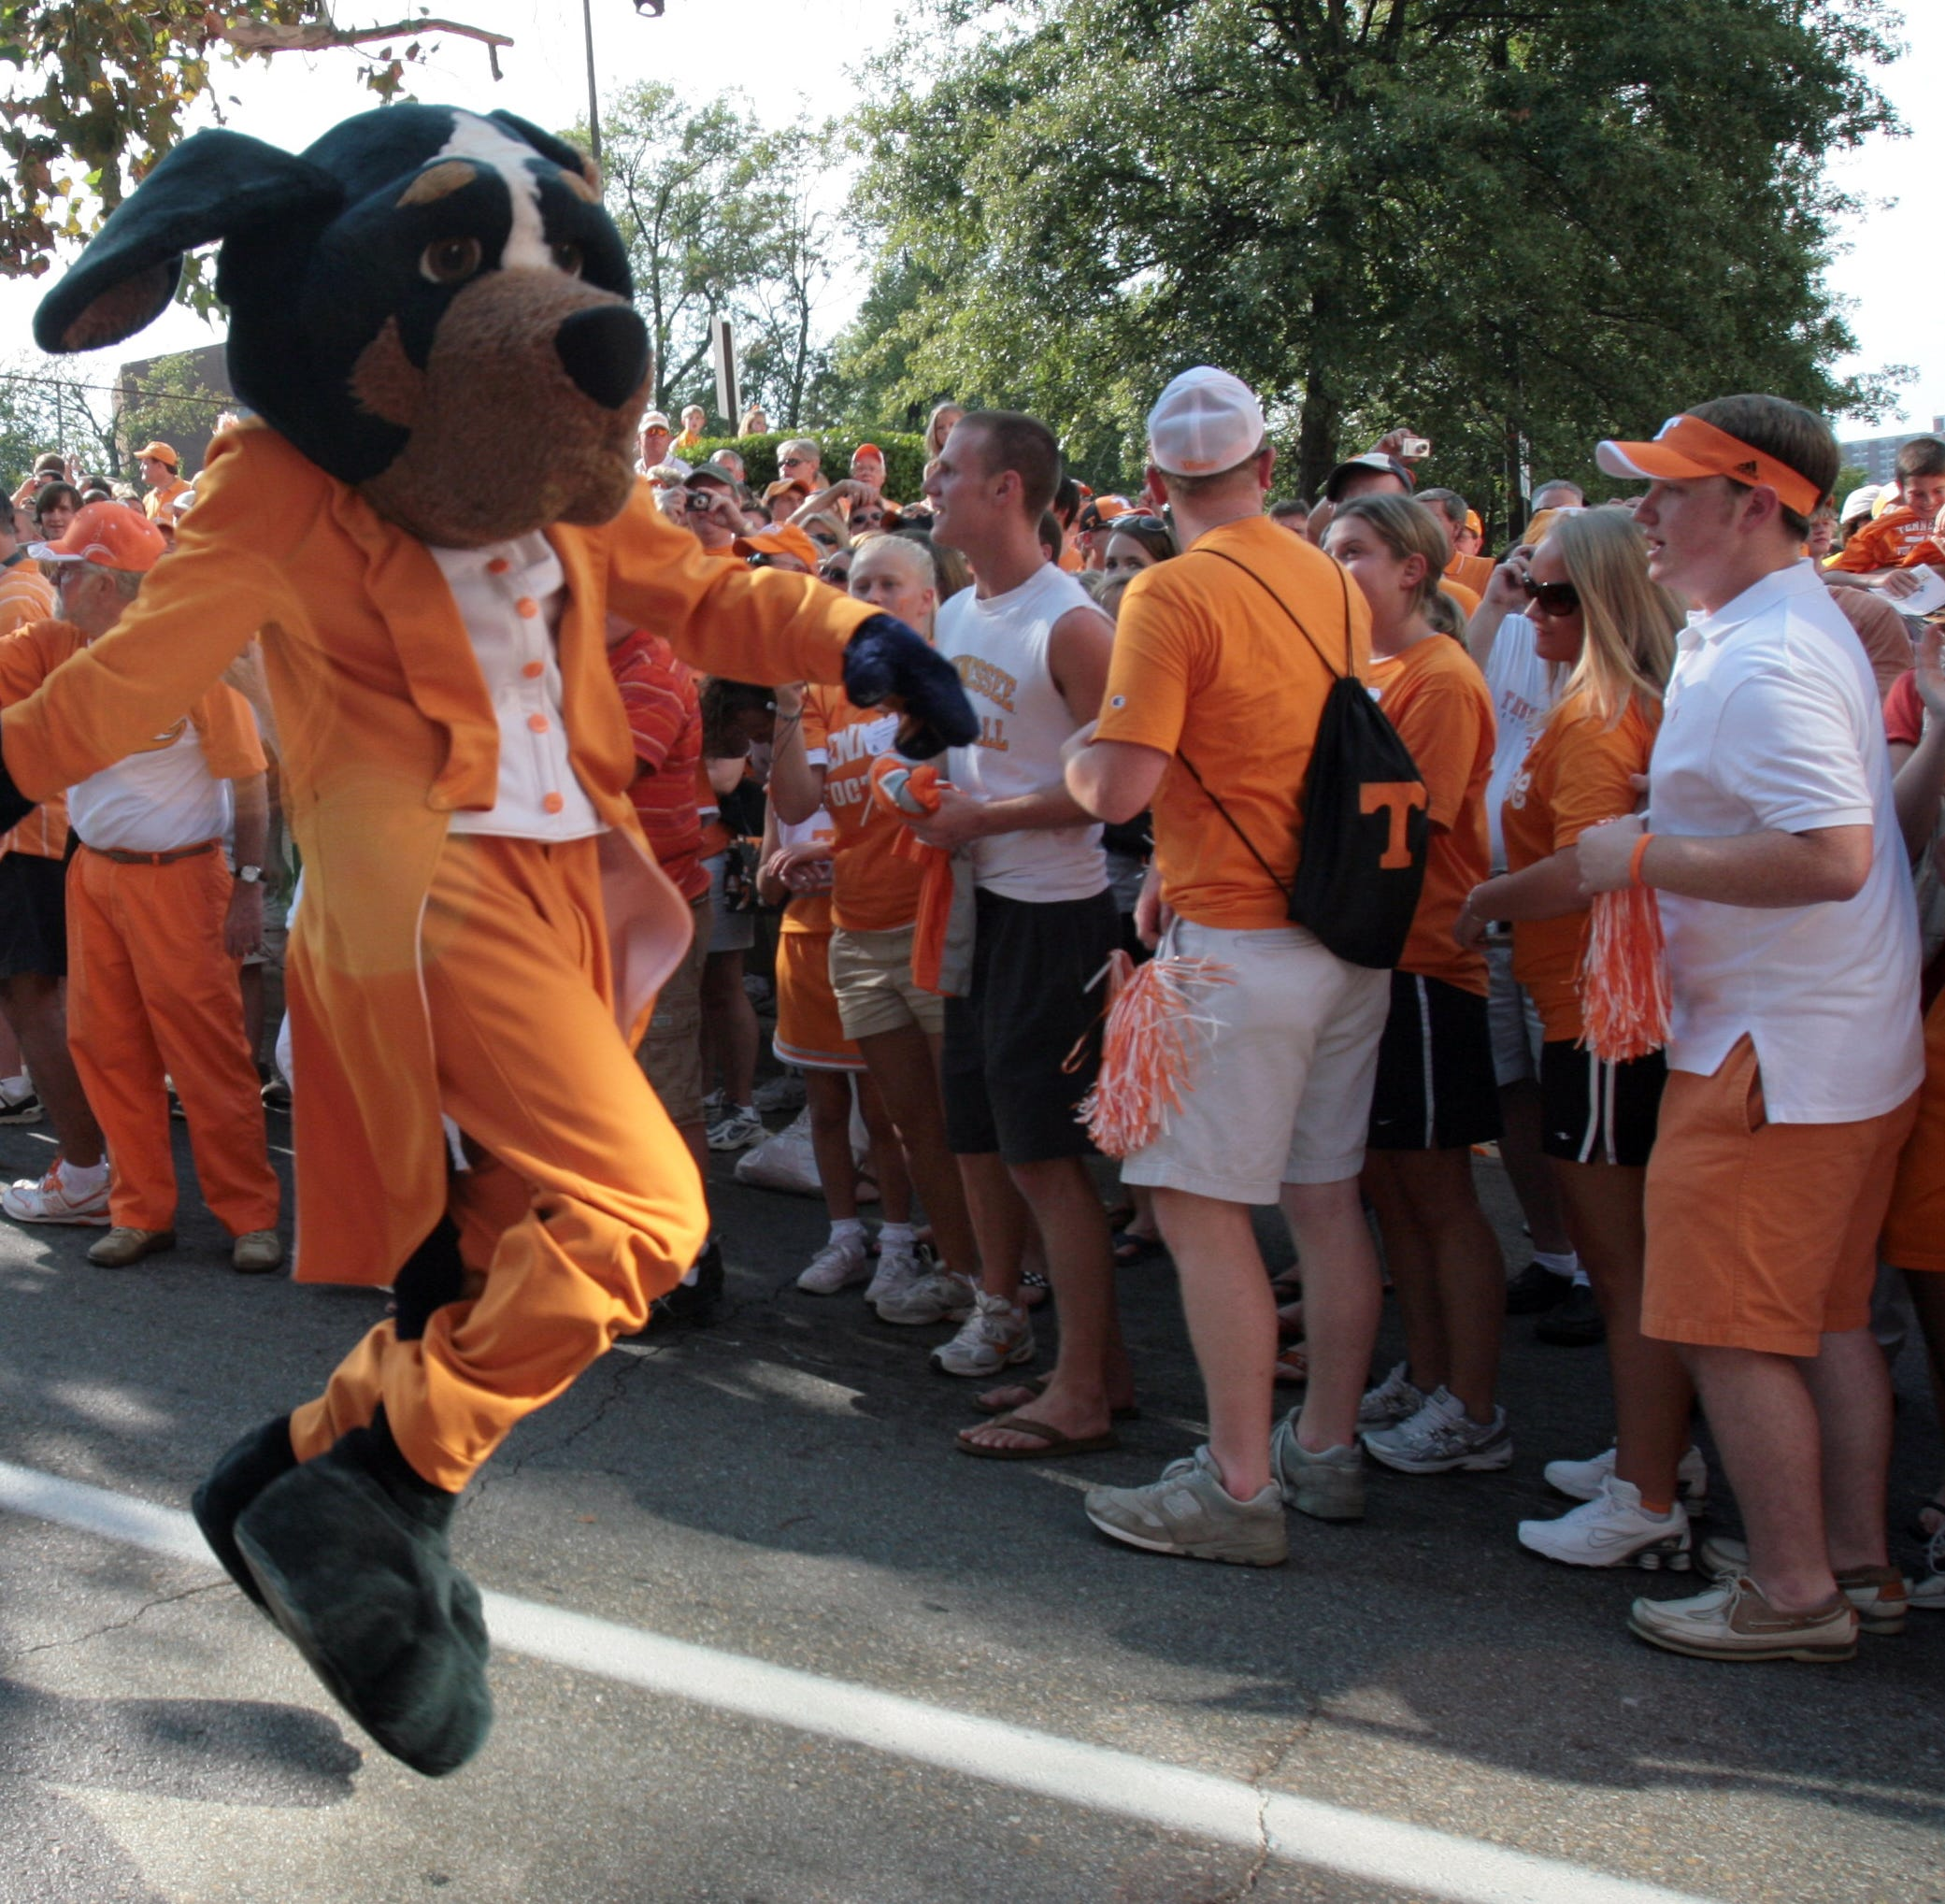 Summer of Smokey tour proves that Tennessee believes Vols fans will settle for anything